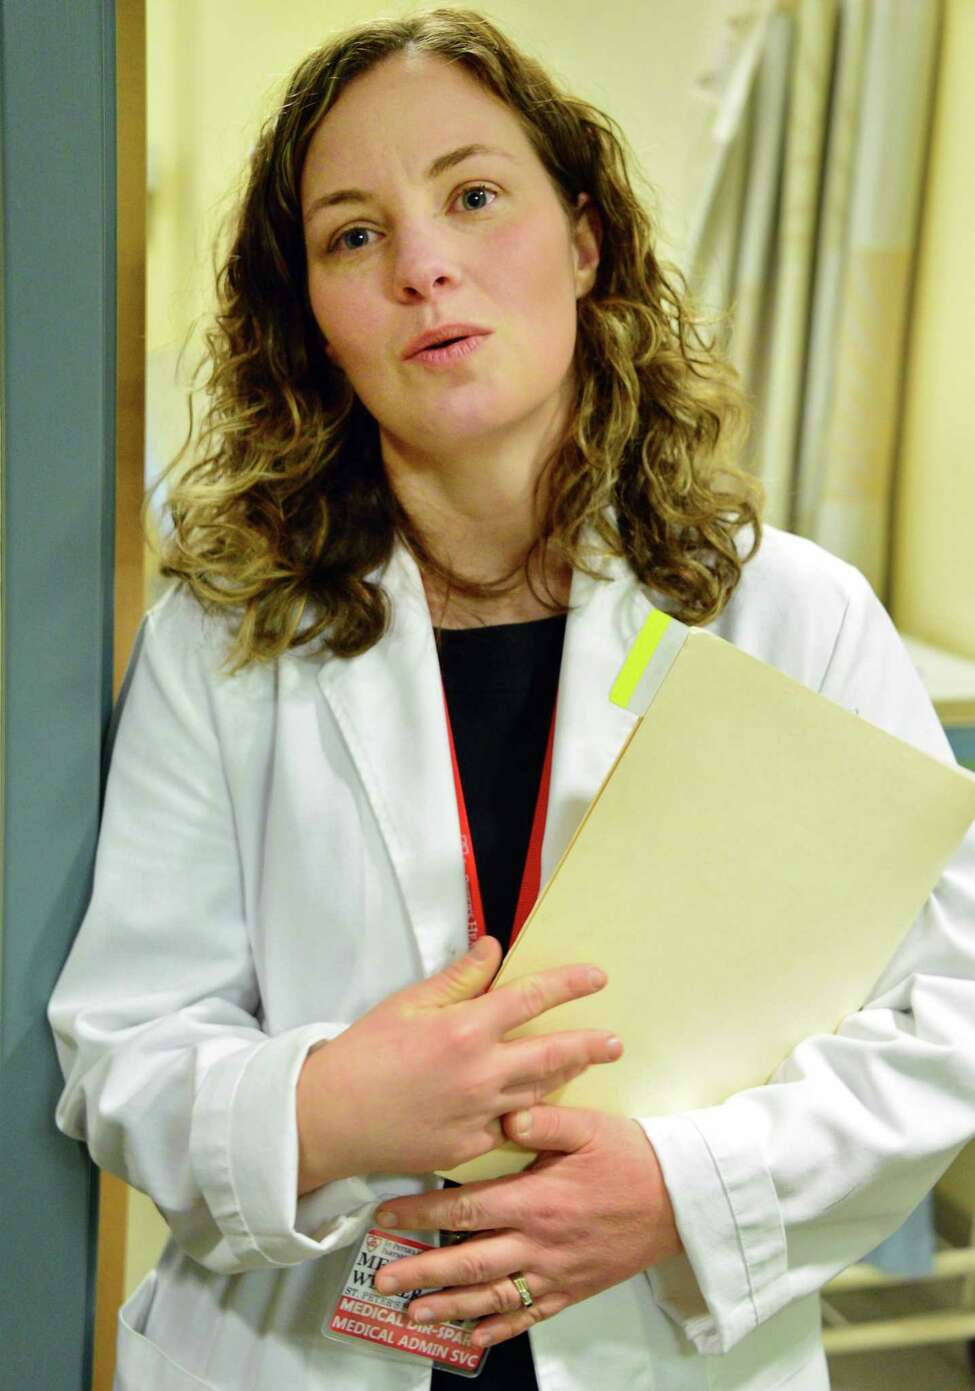 Dr. Melissa Weimer in the new ambulatory detox program at St. Peters Hospital Thursday Feb. 1, 2018 in Albany, NY. (John Carl D'Annibale/Times Union)